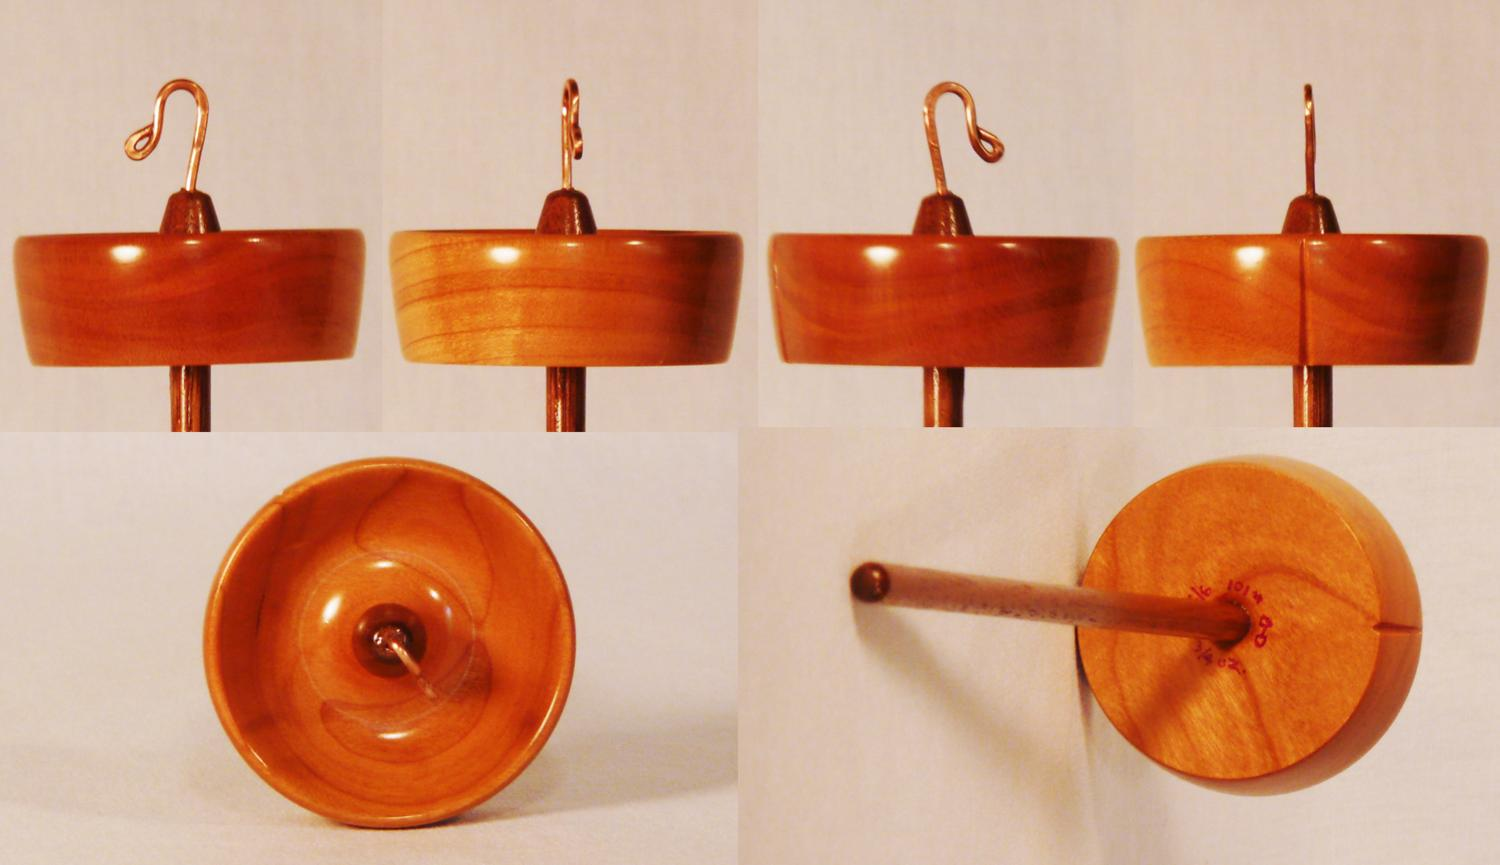 Hand turned top whorl notched drop spindle by Cynthia Haney of Cherry on a Walnut shaft